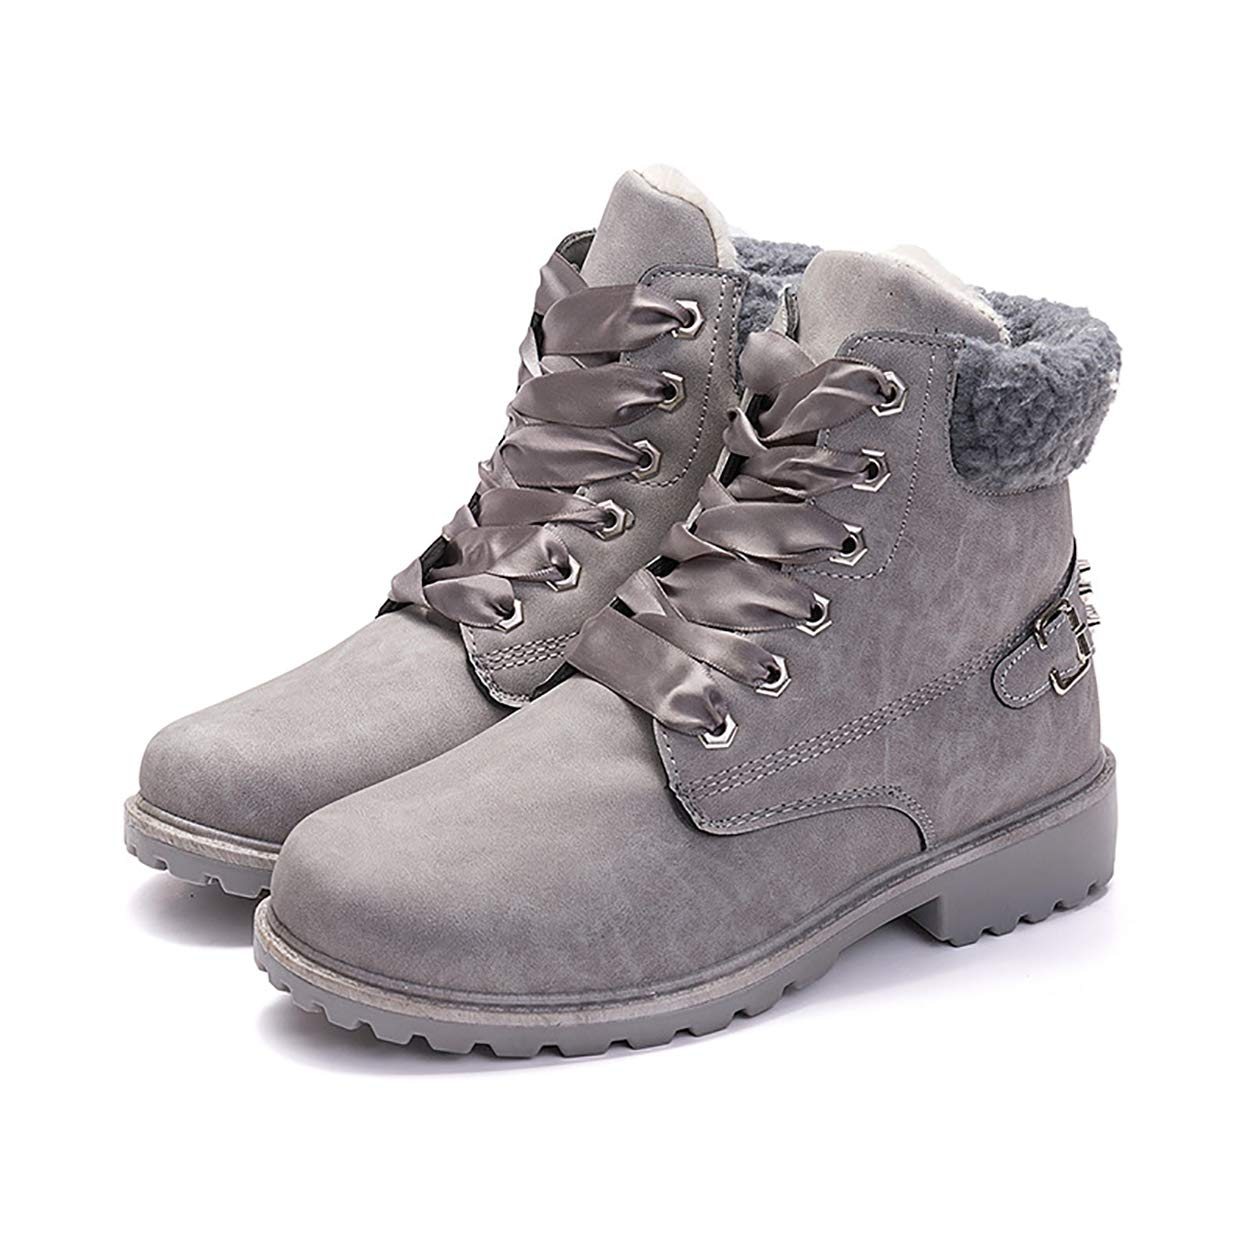 Mostrin Womens Lace Up Round Toe Ankle Boots Leather Flat Cotton Winter Warm Snow Boots